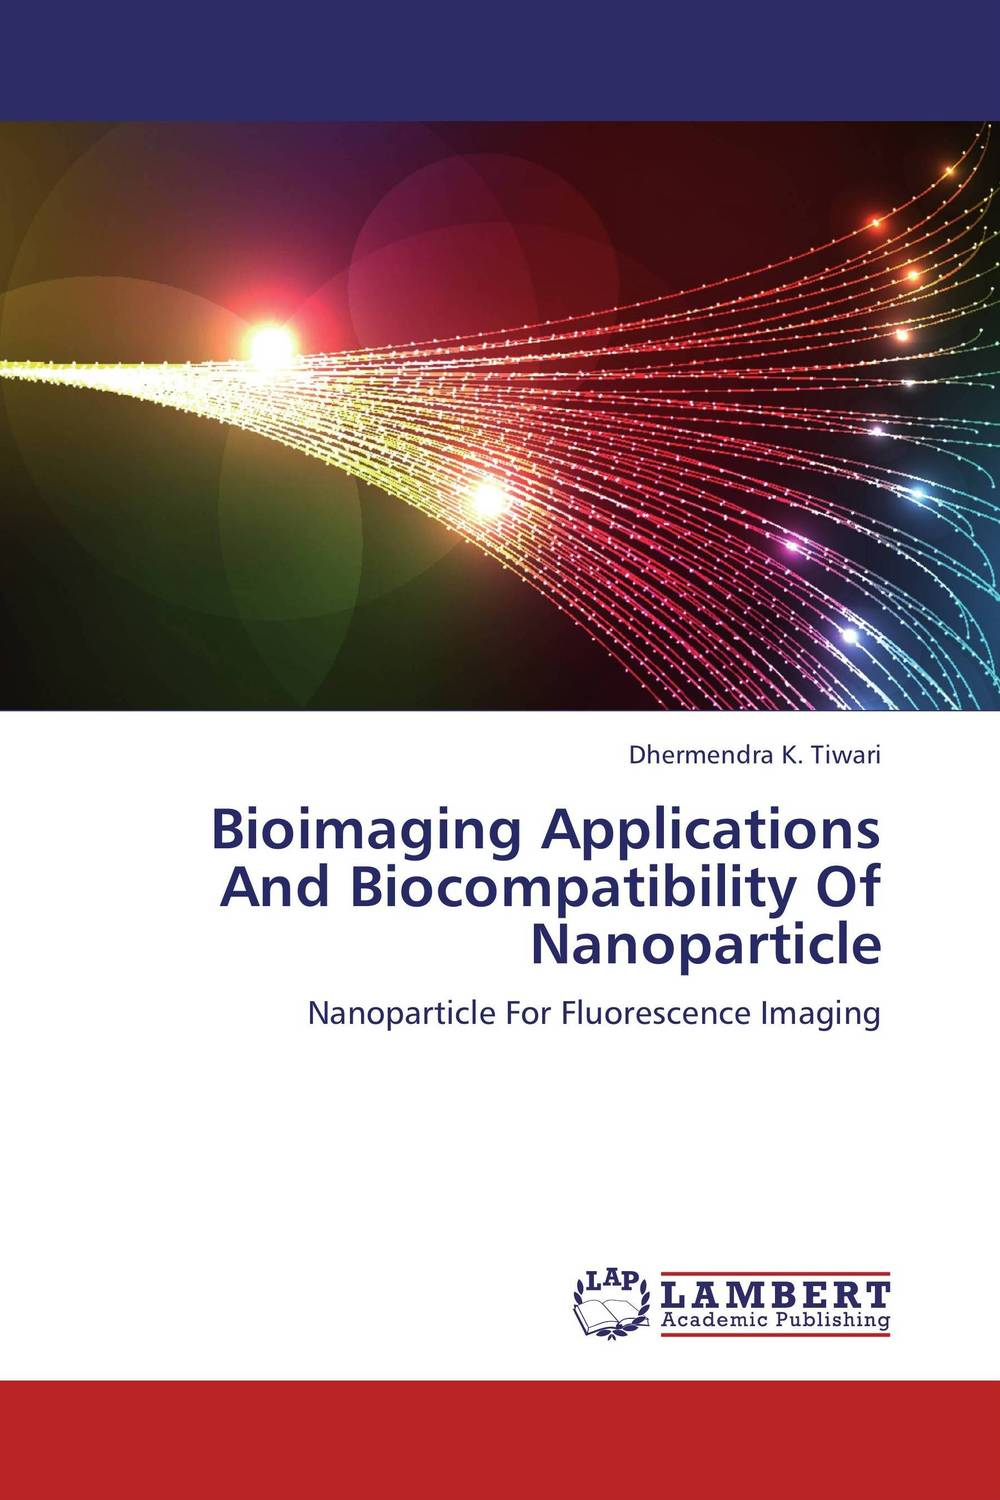 Bioimaging Applications And Biocompatibility Of Nanoparticle choices in breast cancer treatment – medical specialists and cancer survivors tell you what you need to know